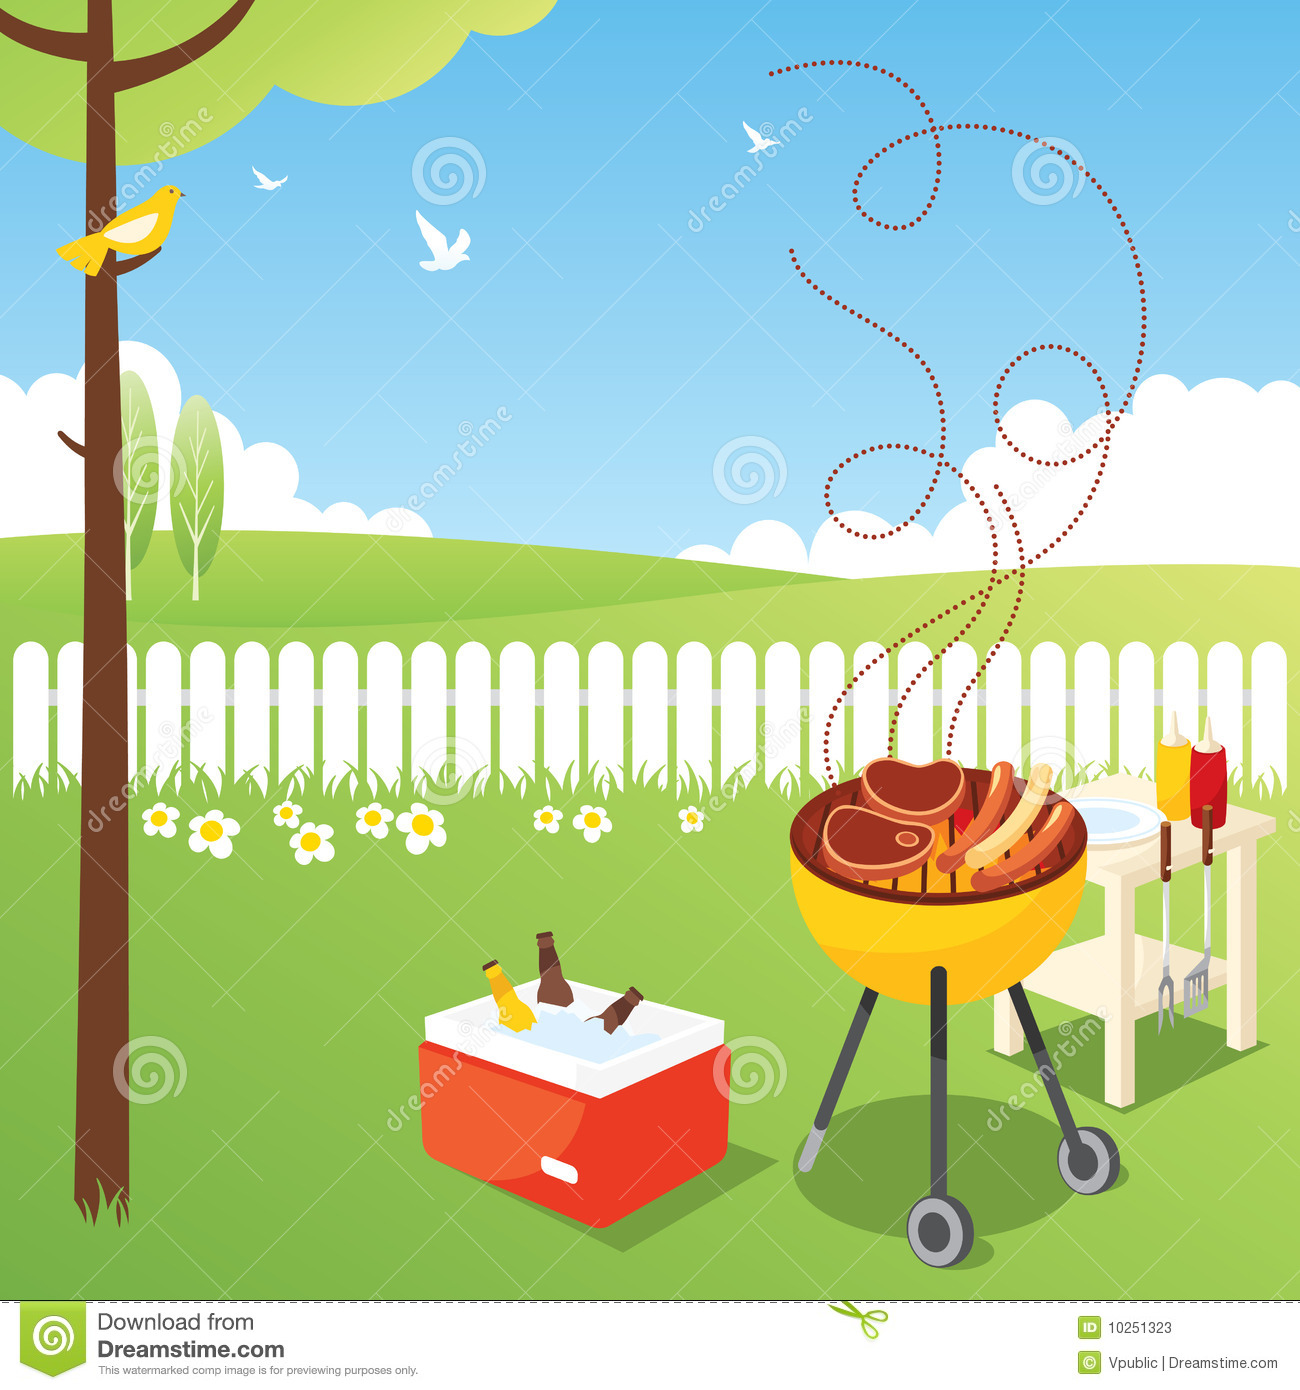 Enjoy the birds and flowers in the spring of barbecue.